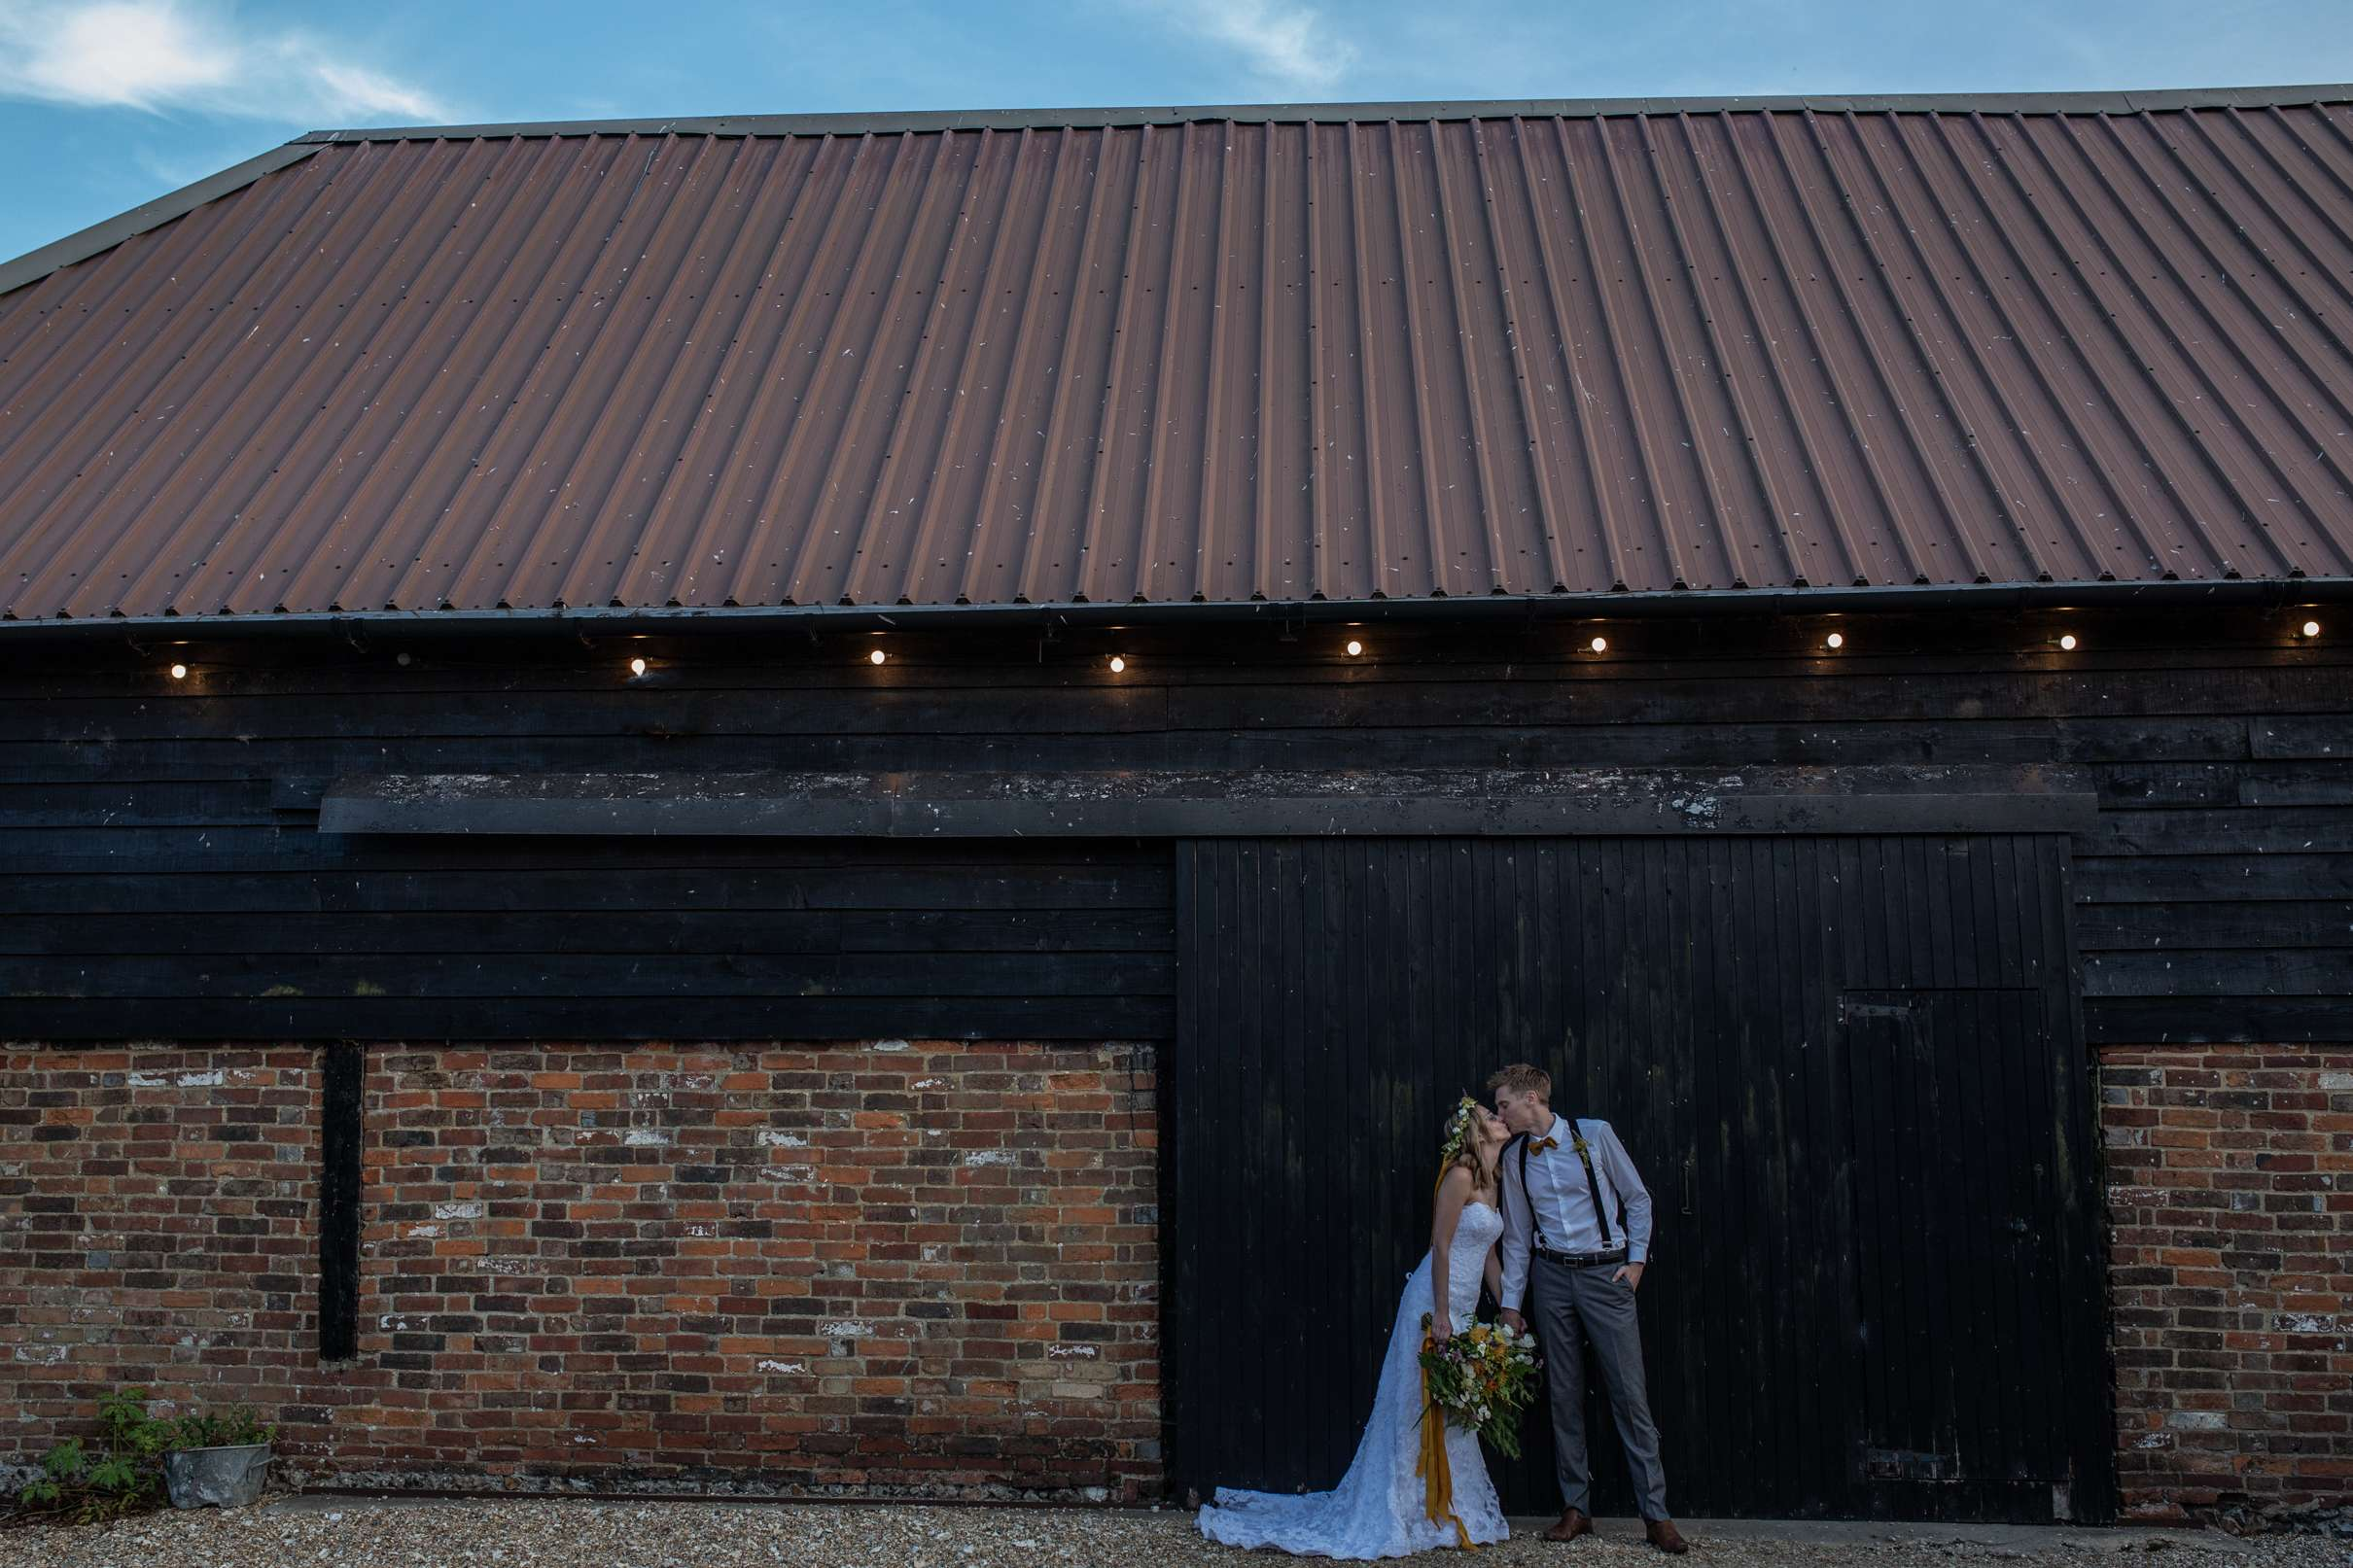 A wedding photo in Chichester a bgroom standing by a wooden clad wall, taken at Chidham barn